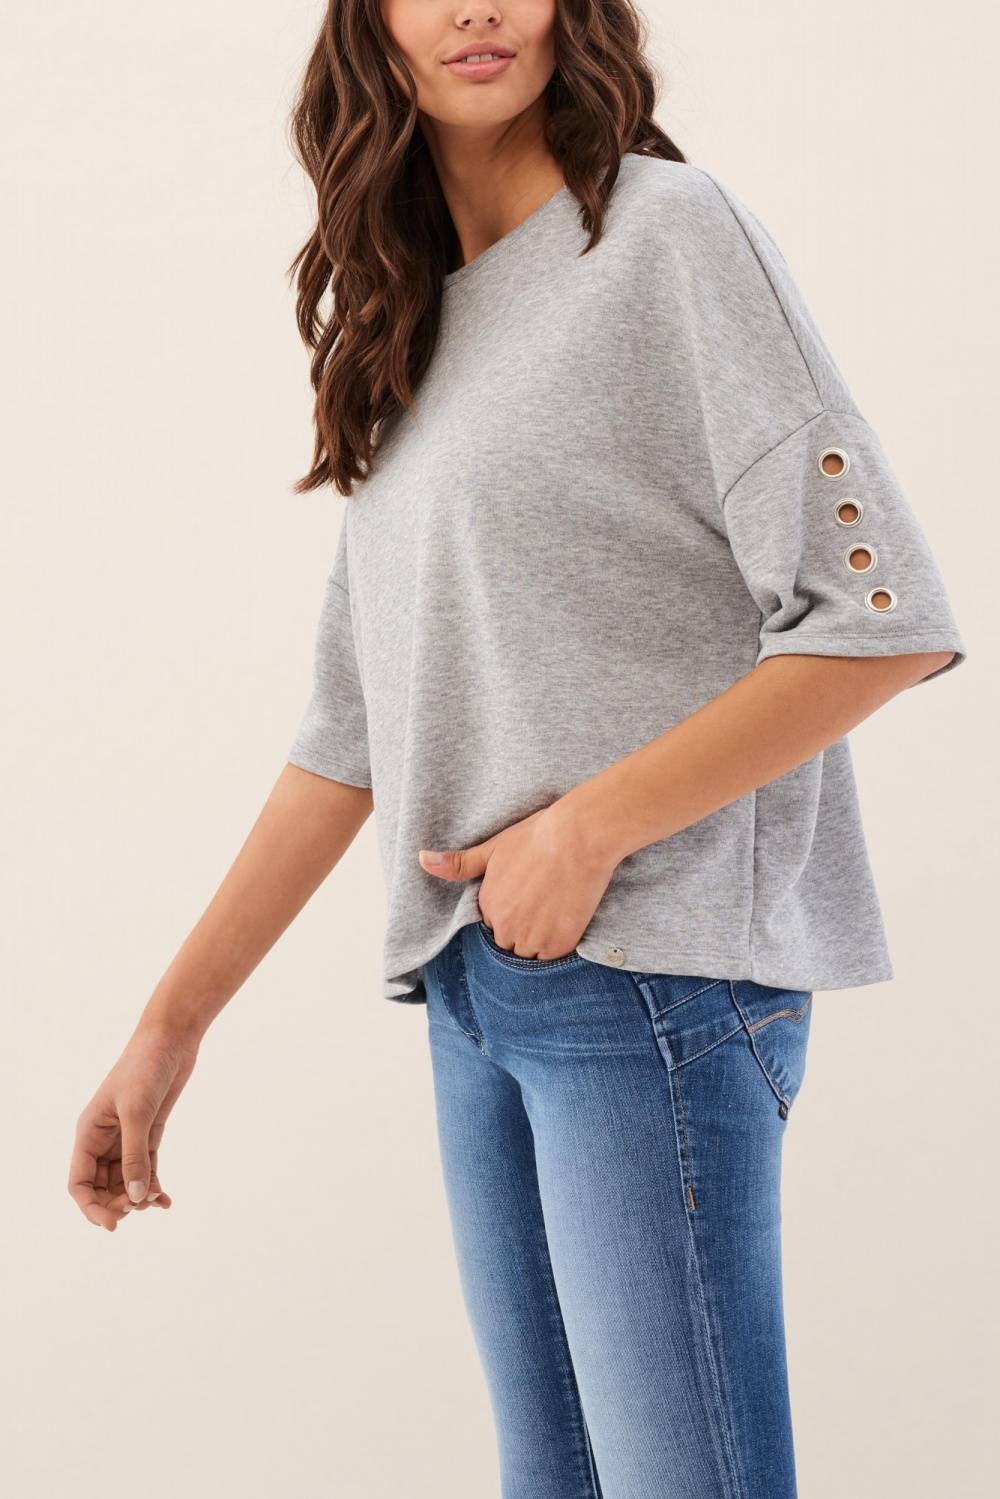 Jersey with eyelets on the sleeves - Salsa